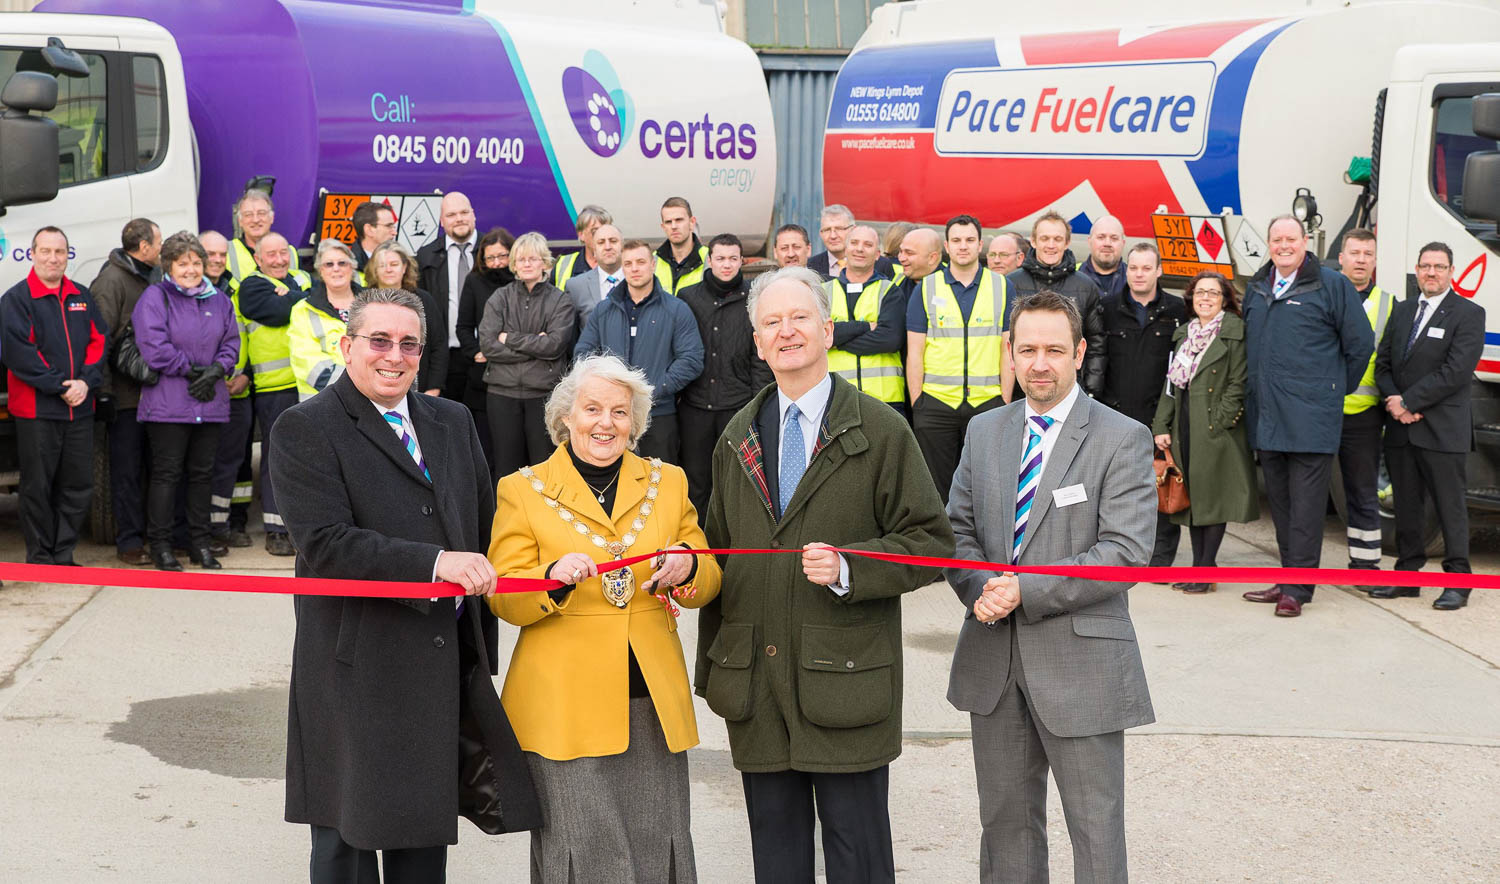 Ribbon cutting of the Pace Fuelcare depot in Kings Lynn